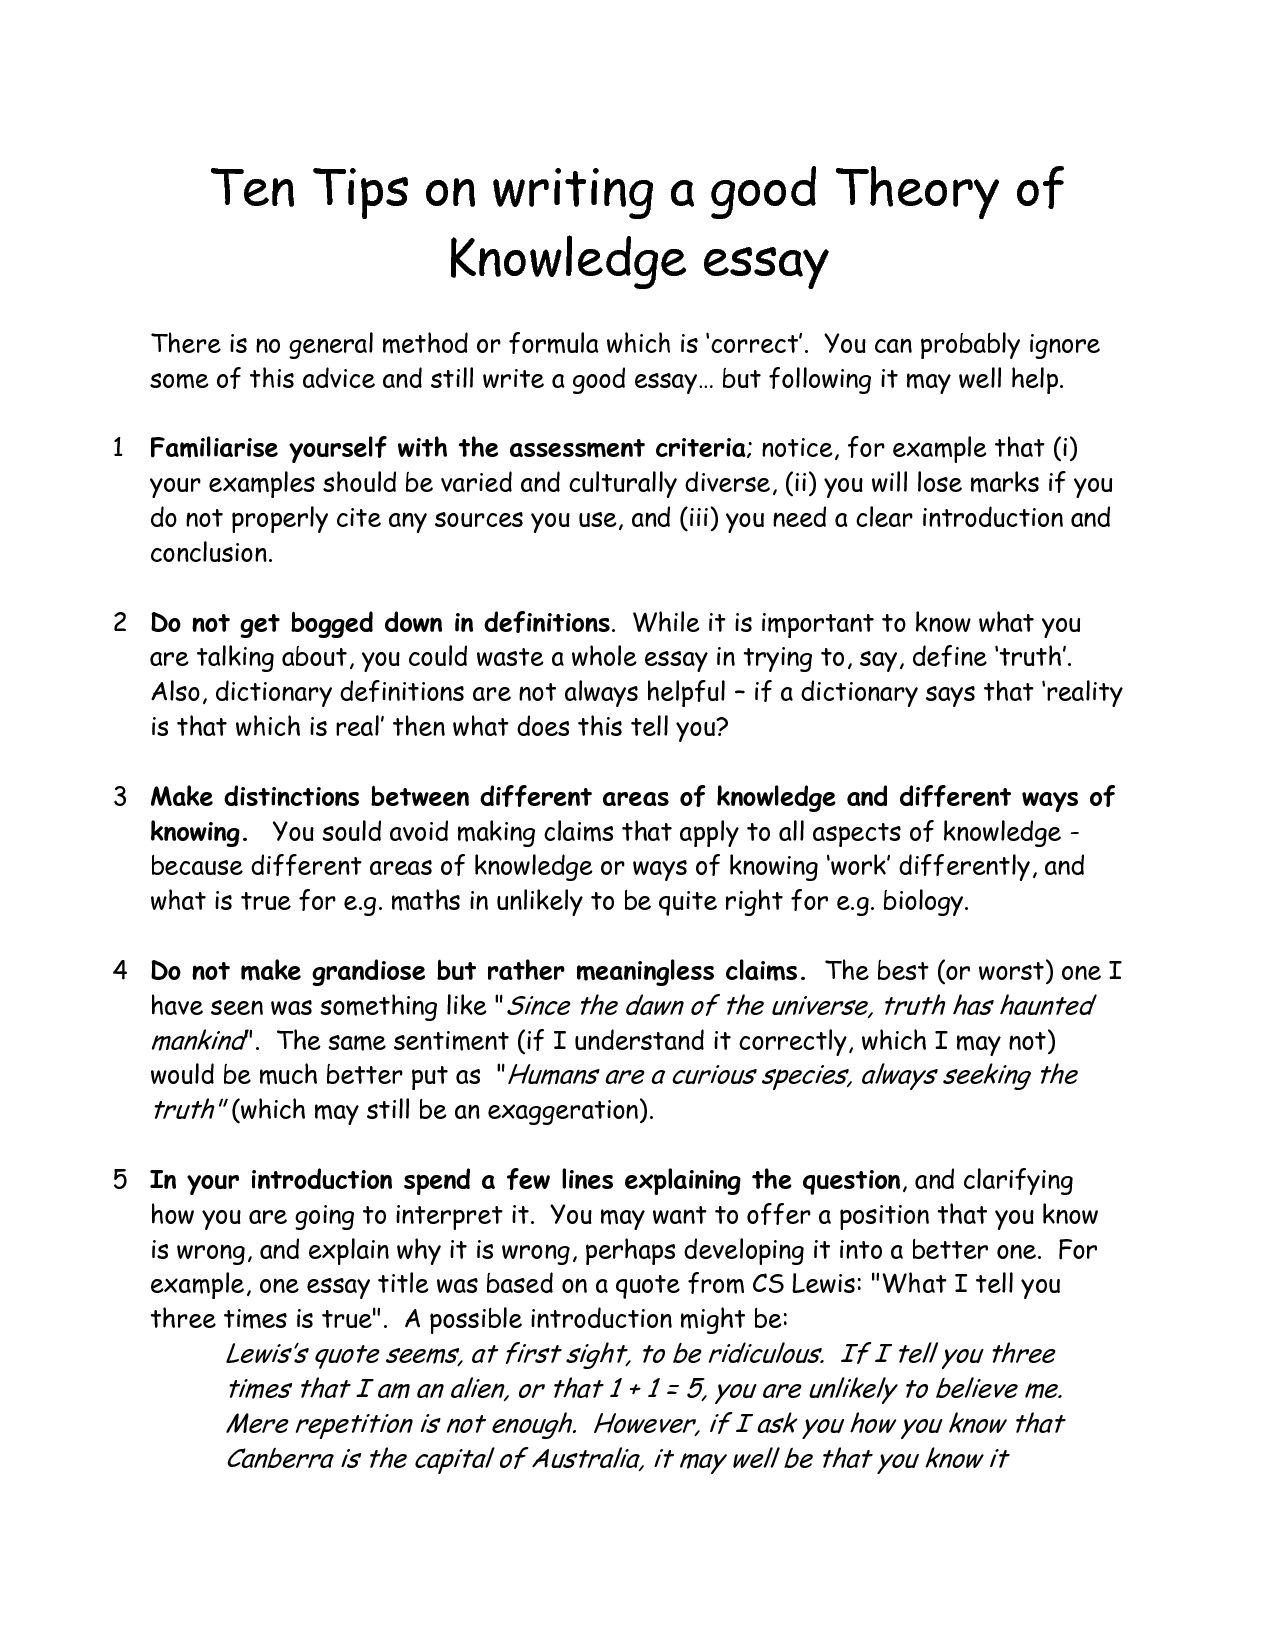 What Is A Thesis Statement For An Essay Essay About Myself As A Writer Top English Essays also How To Start A Business Essay Essay About Myself As A Writer  An Essay About Myself Writing  Health Essays